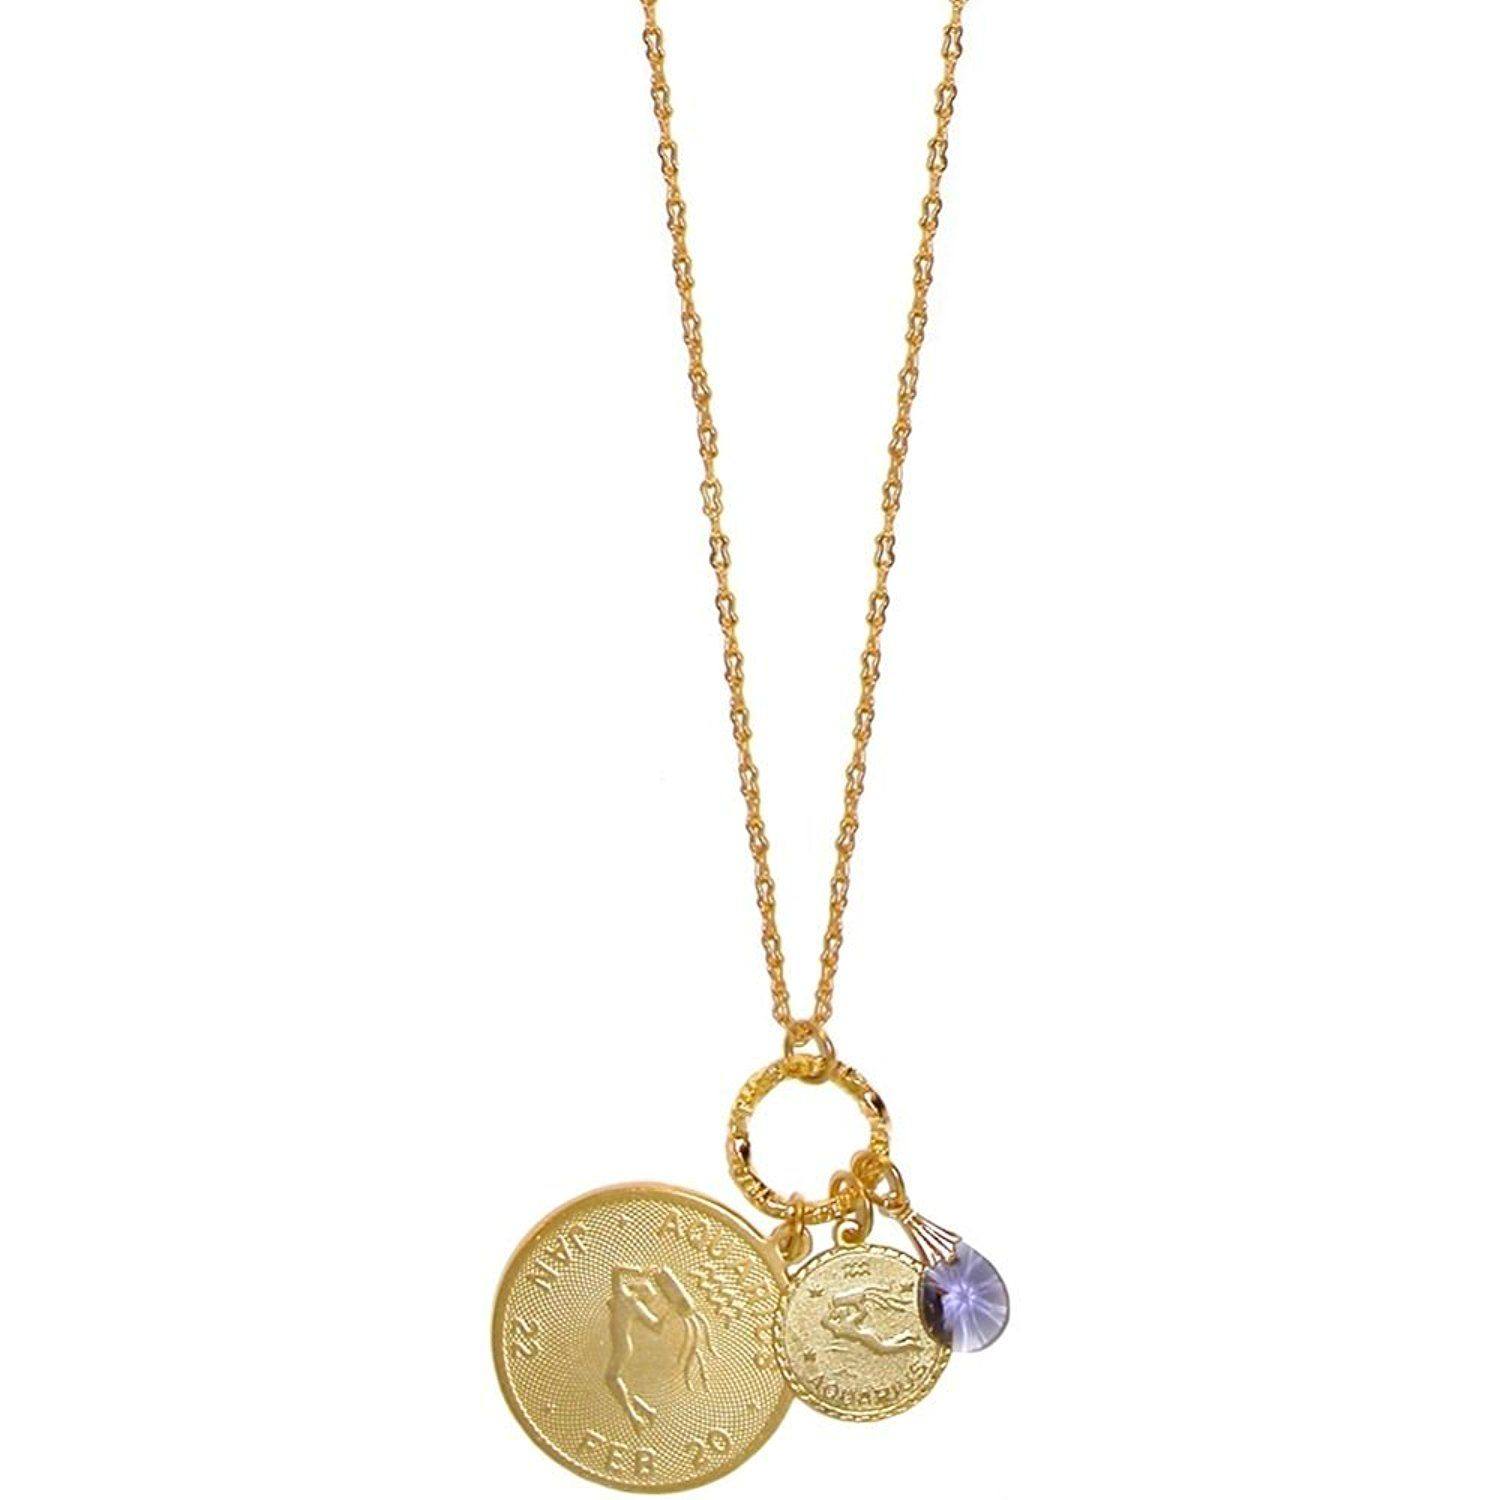 Mystical Sun Sign Horoscope Zodiac Pendants Necklace with Swarovski